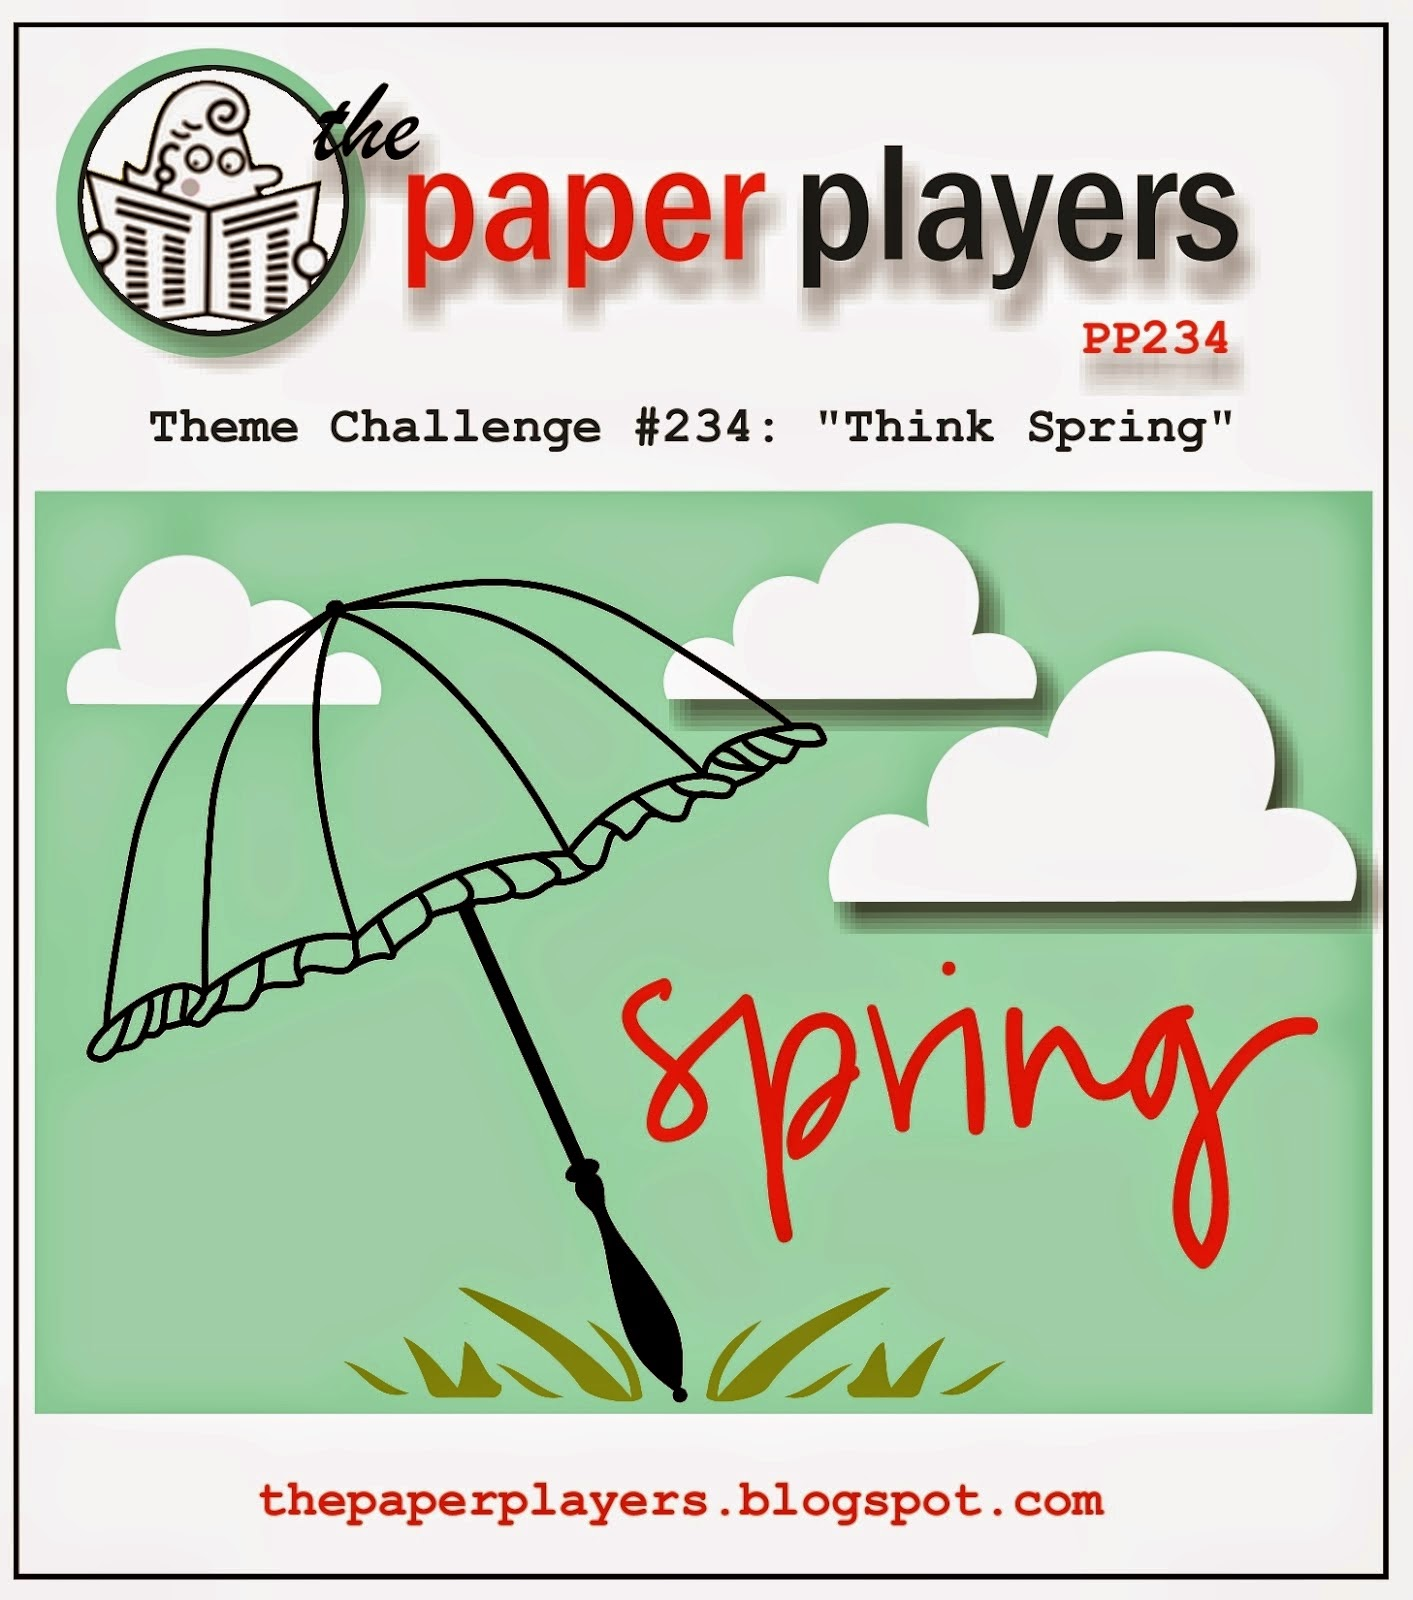 http://thepaperplayers.blogspot.ca/2015/03/pp234-lauries-theme-challenge.html